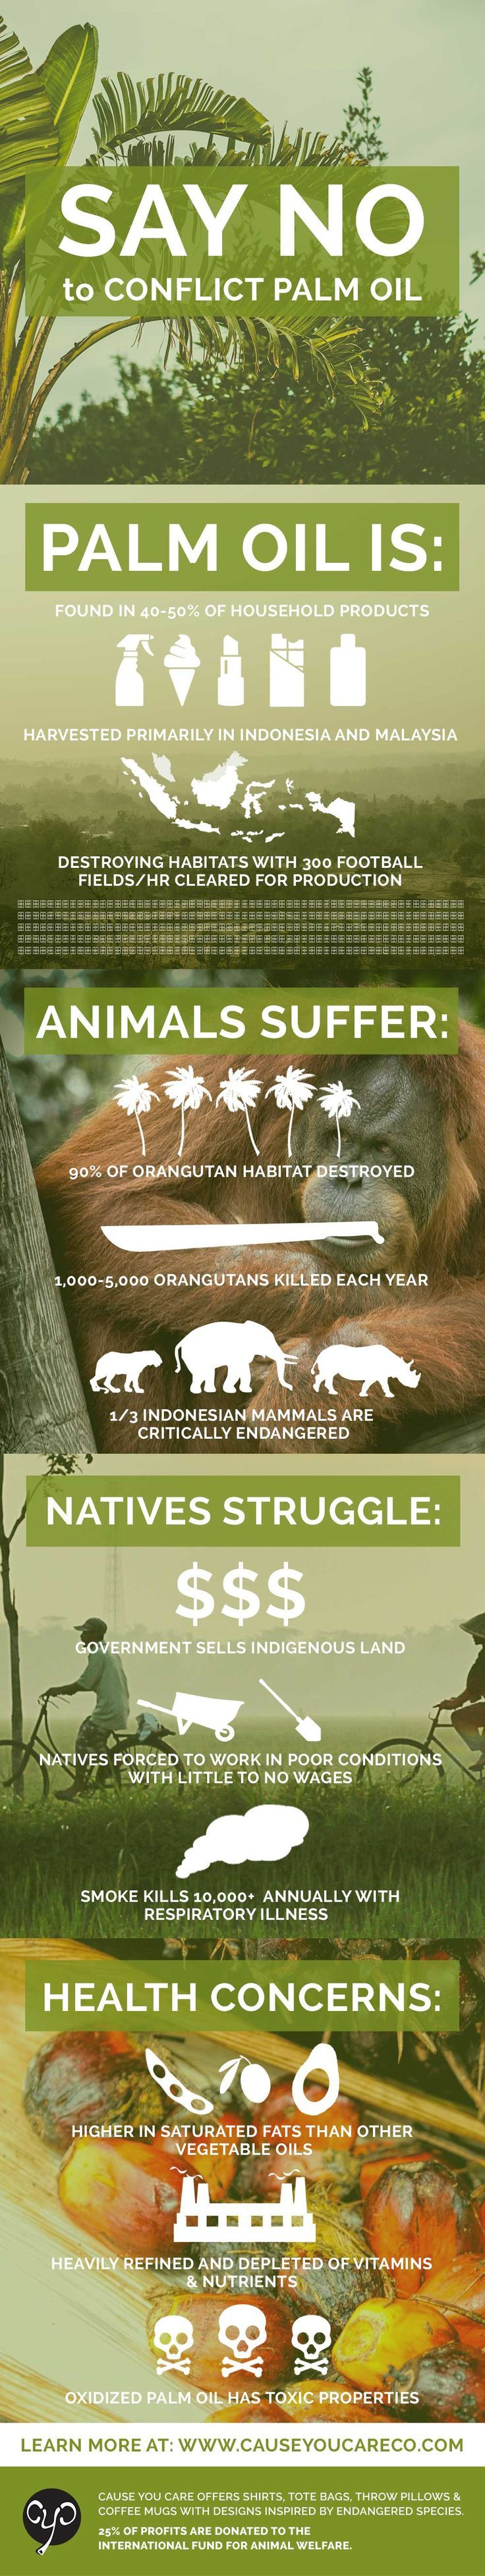 Did you know palm oil is responsible for severe habitat destruction, climate change, animal cruelty and indigenous rights abuses? Here's how to avoid it! #infographic #palmoil #sustainability